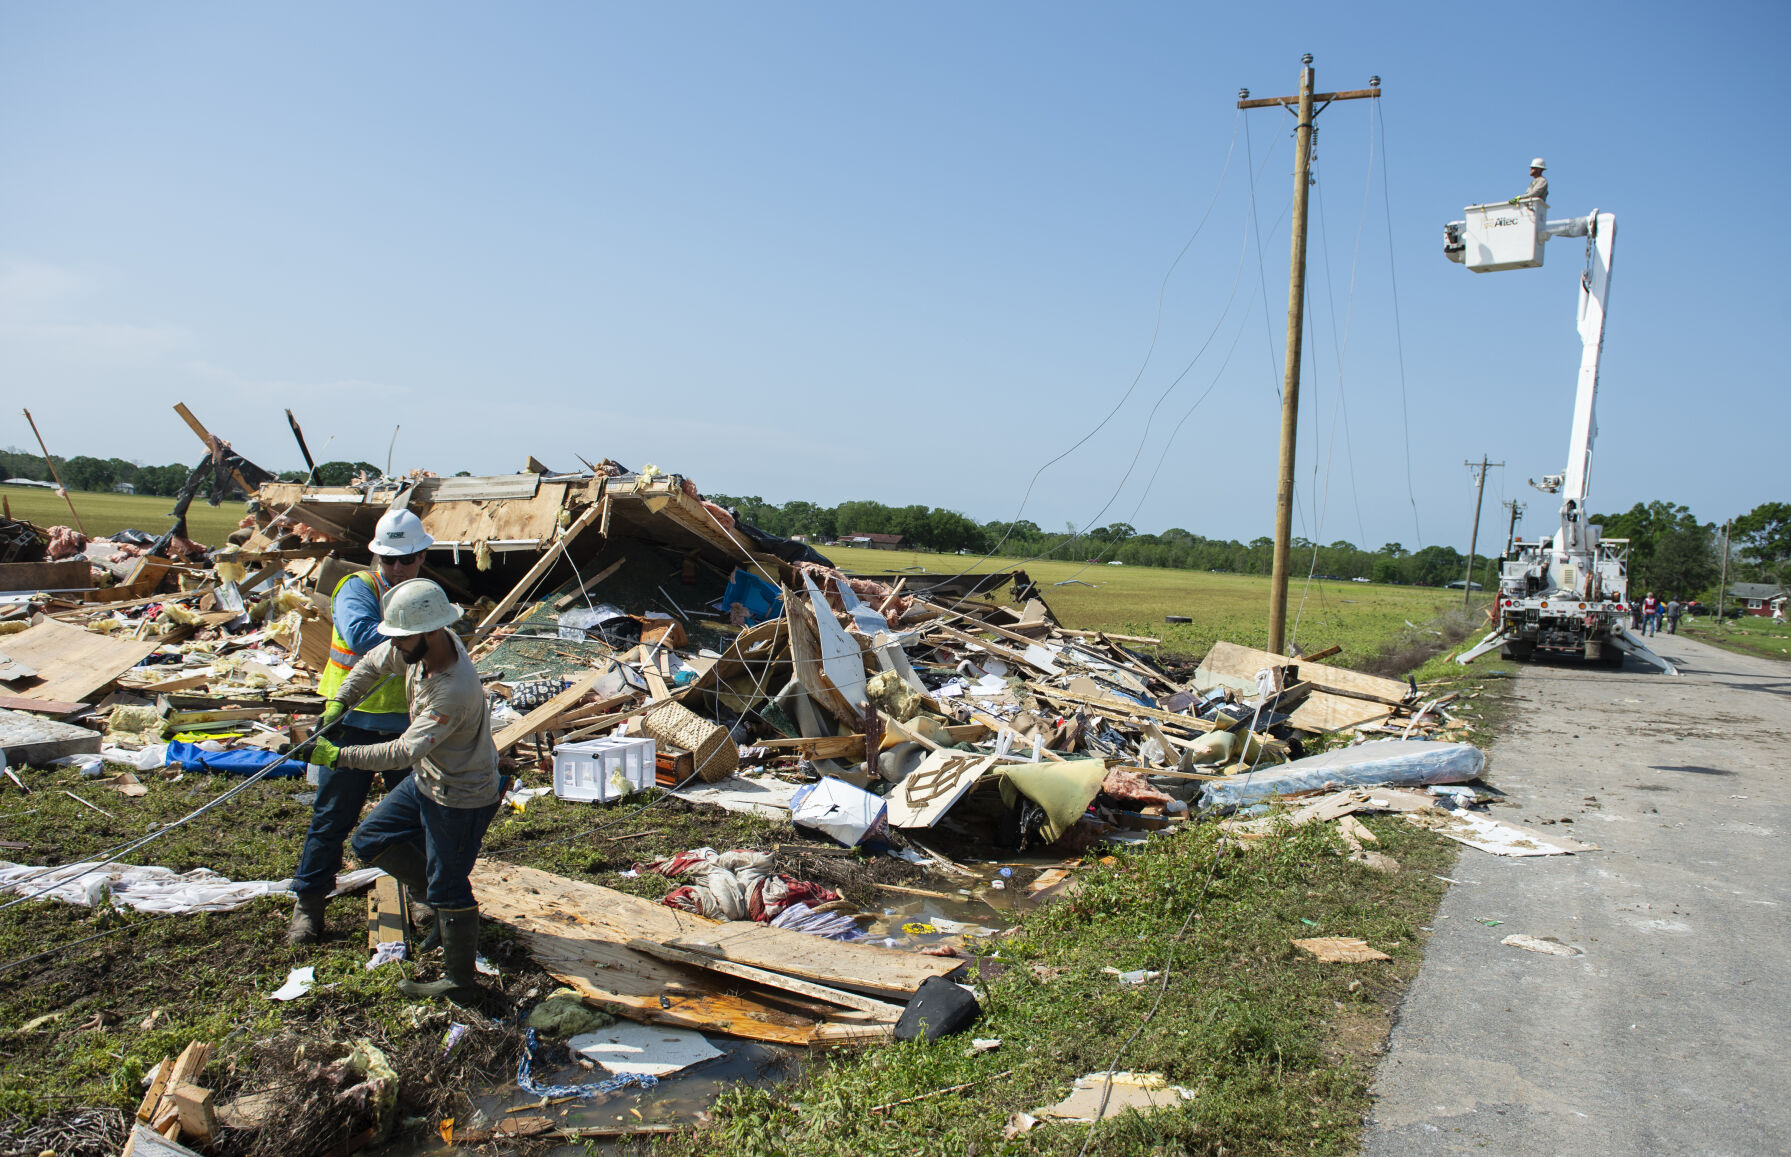 Community fund opened to support families devastated by Palmetto tornado; here's how to help